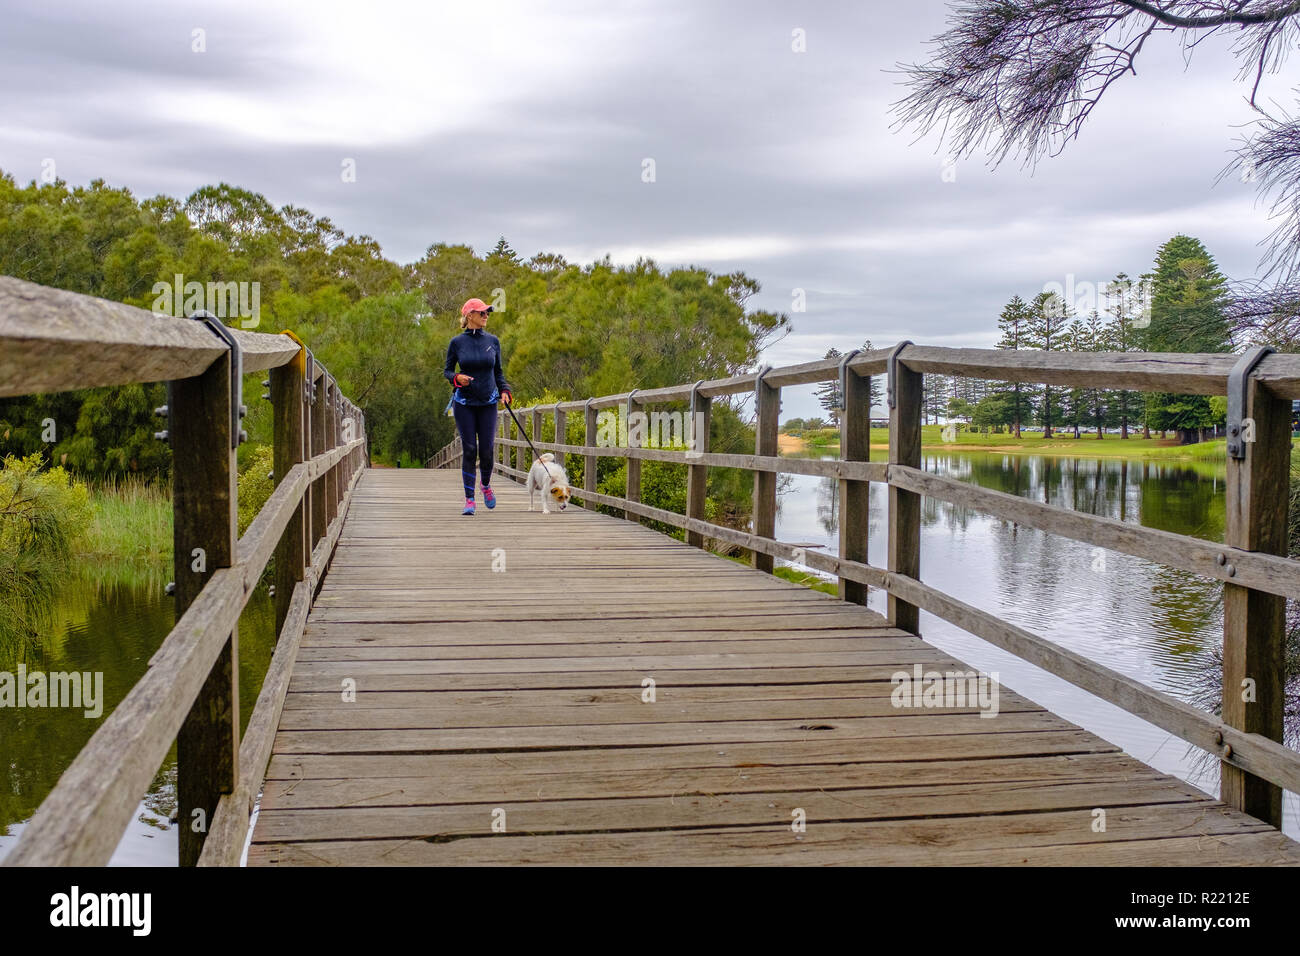 Woman  in sports lifestyle clothing outside enjoying unplugged me time walking towards with small dog on rustic wooden bridge across river. - Stock Image